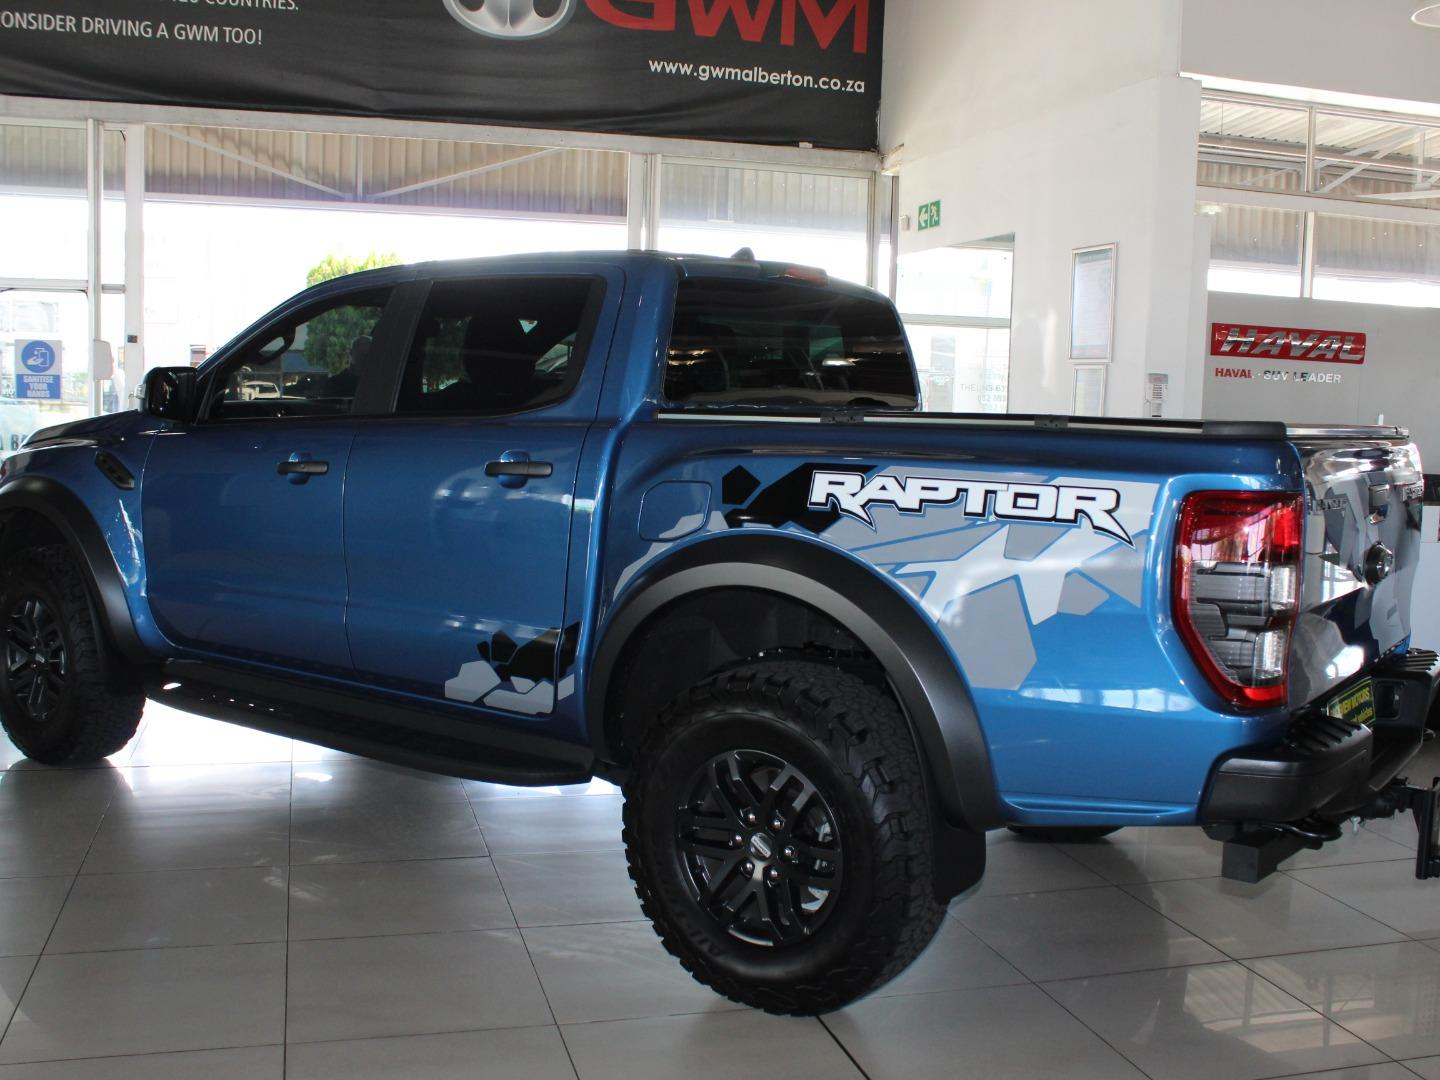 2019 Ford Ranger 2.0Bi-Turbo Double Cab 4x4 Raptor- Picture 3